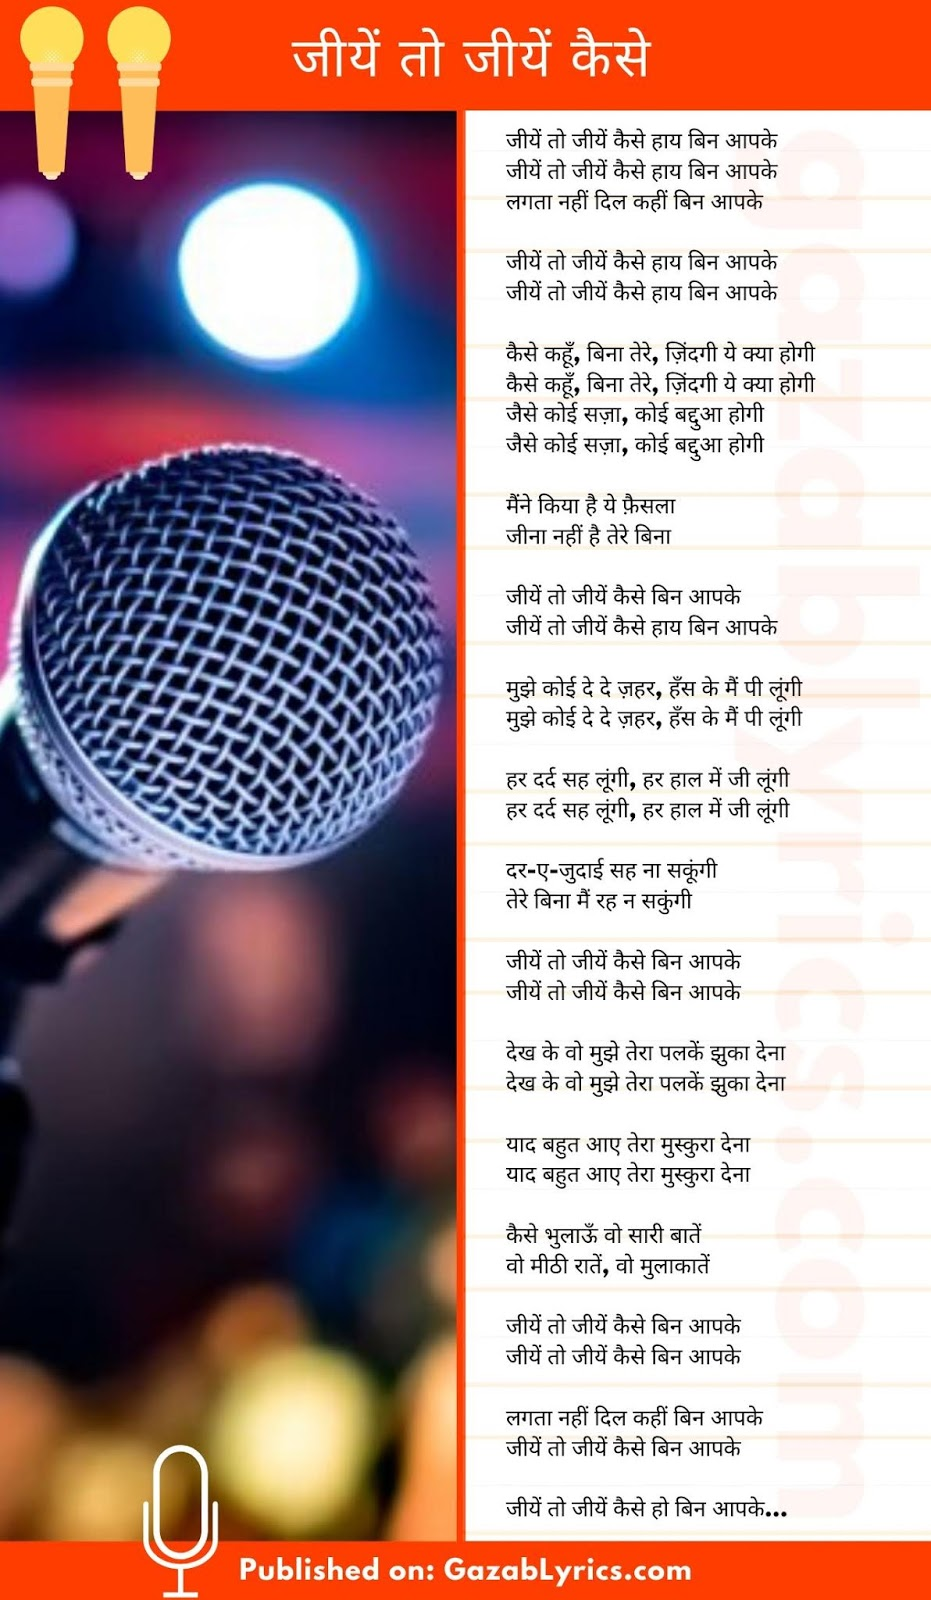 Jiye To Jiye Kaise song lyrics image